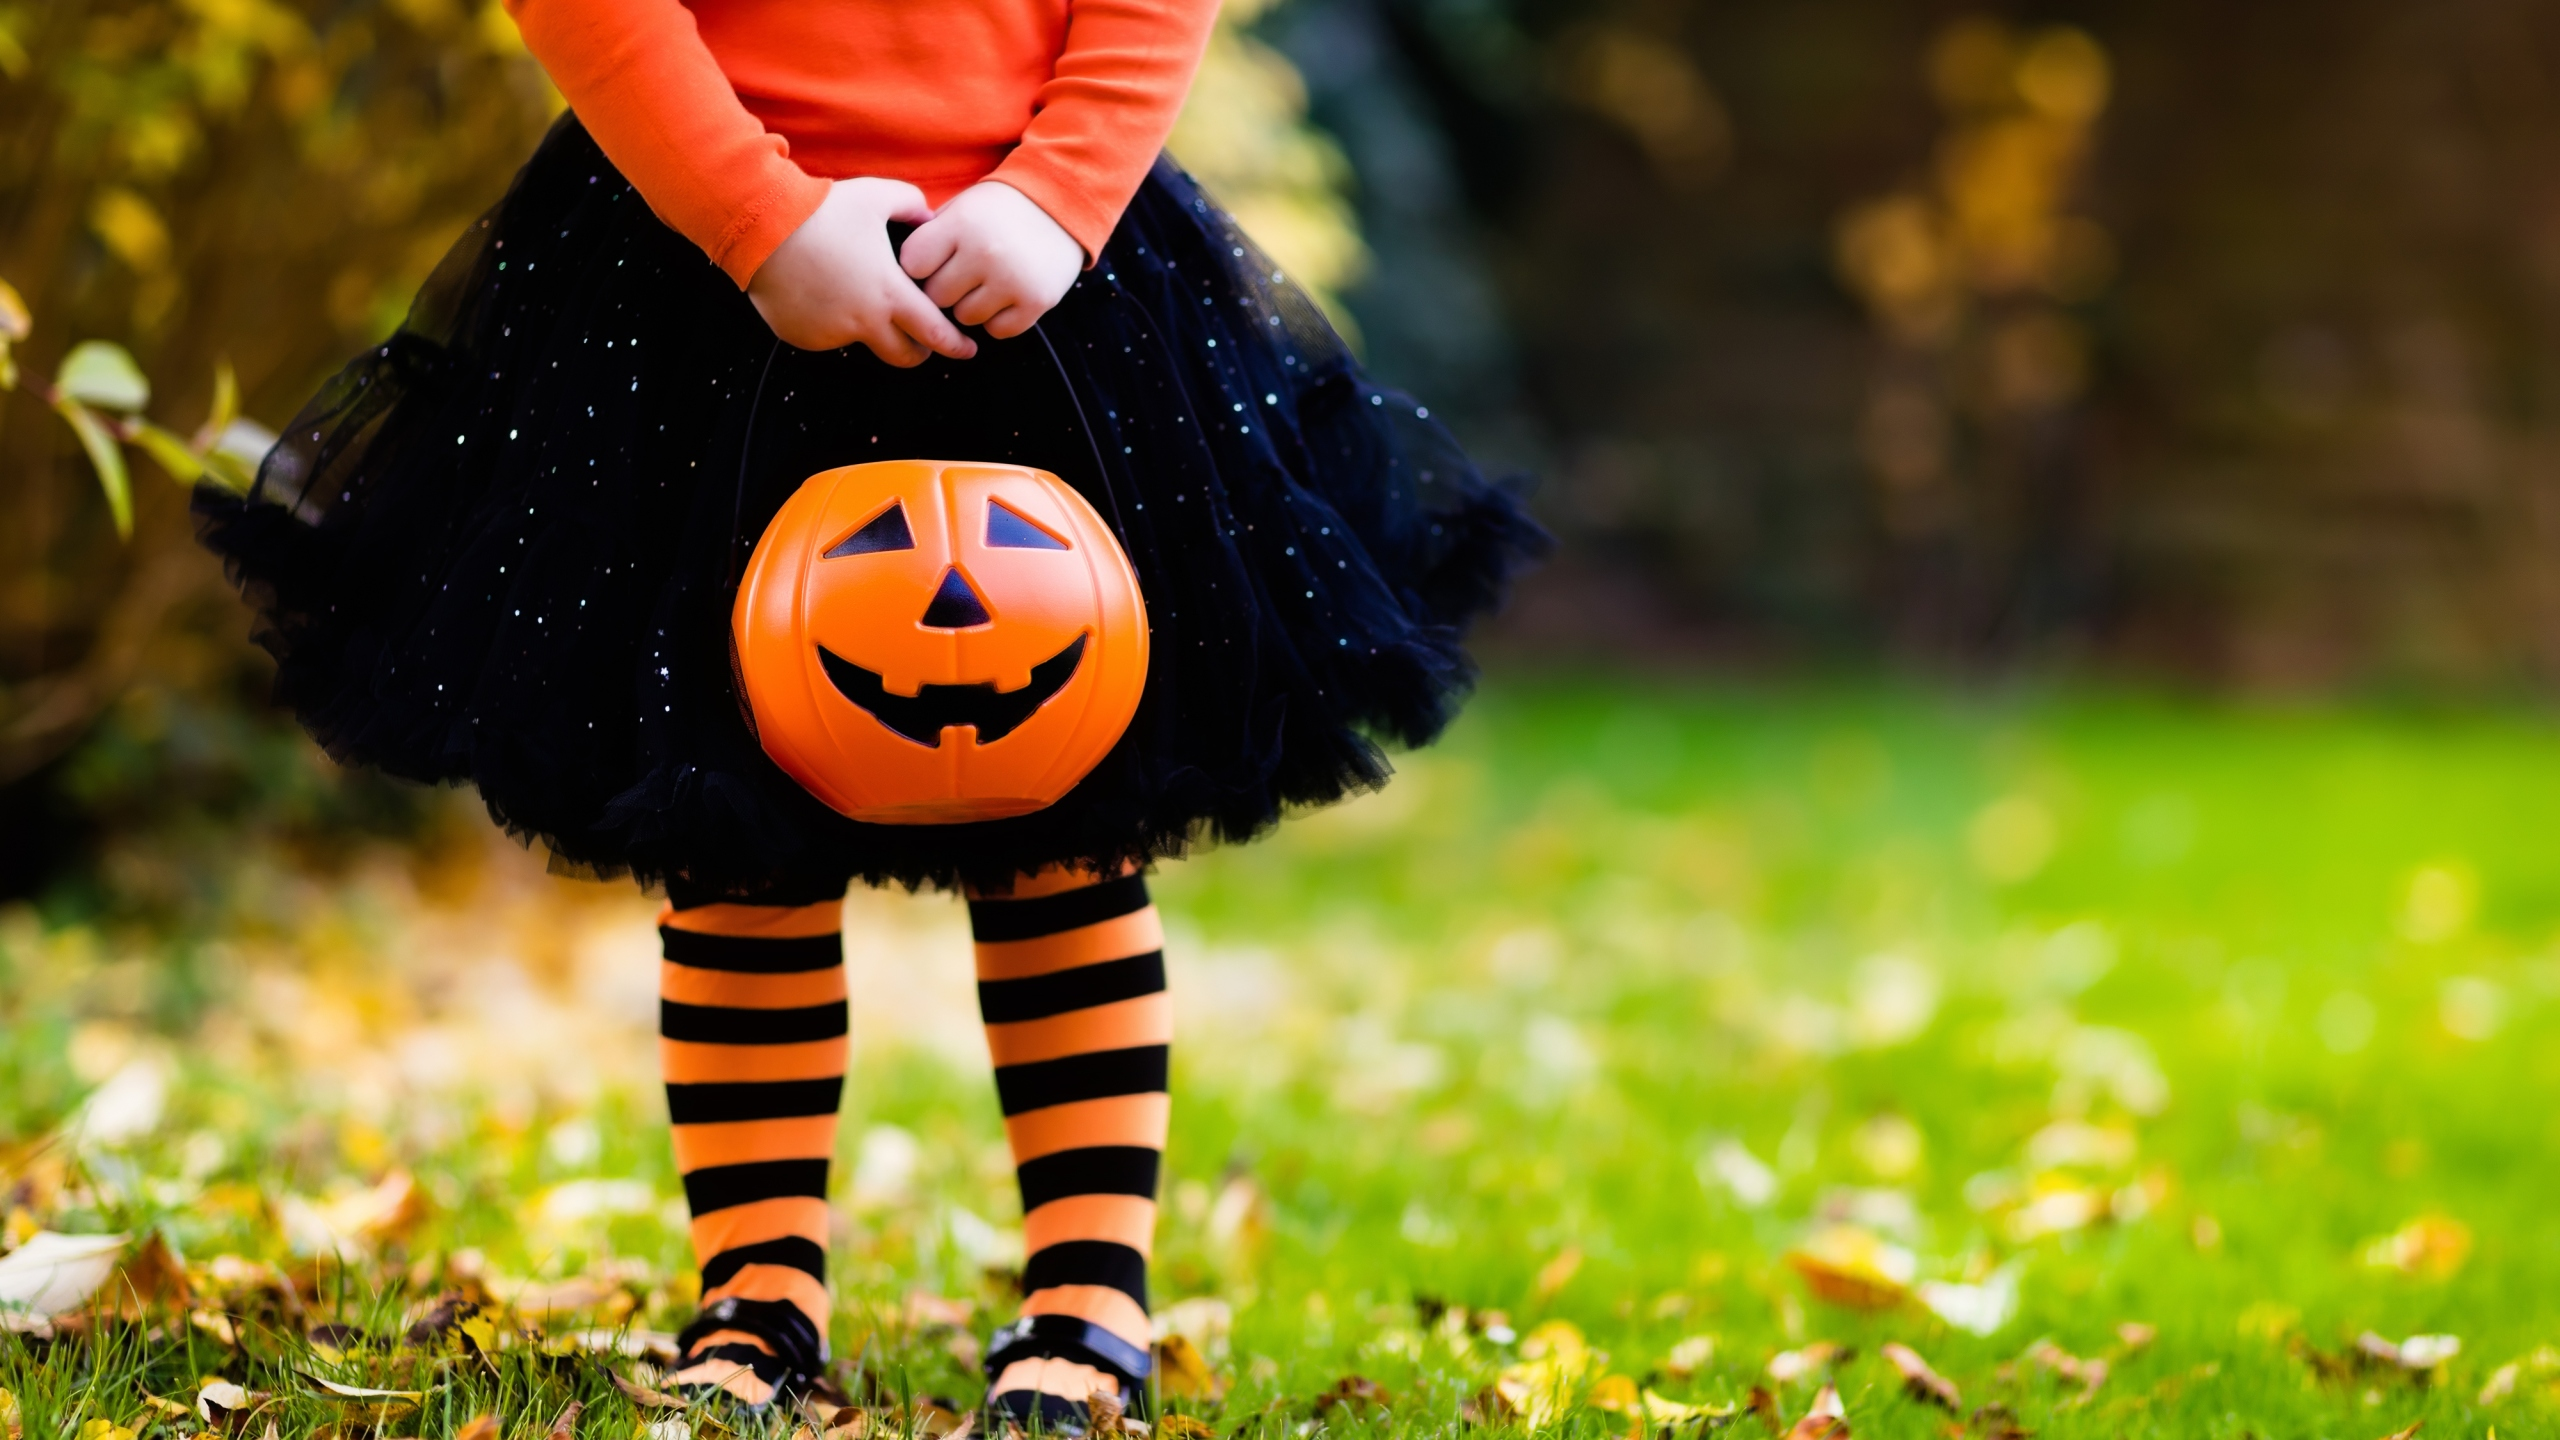 Halloween Trunk Or Treat 2020 Wv Moundsville to host trick or treat on October 31 | WTRF